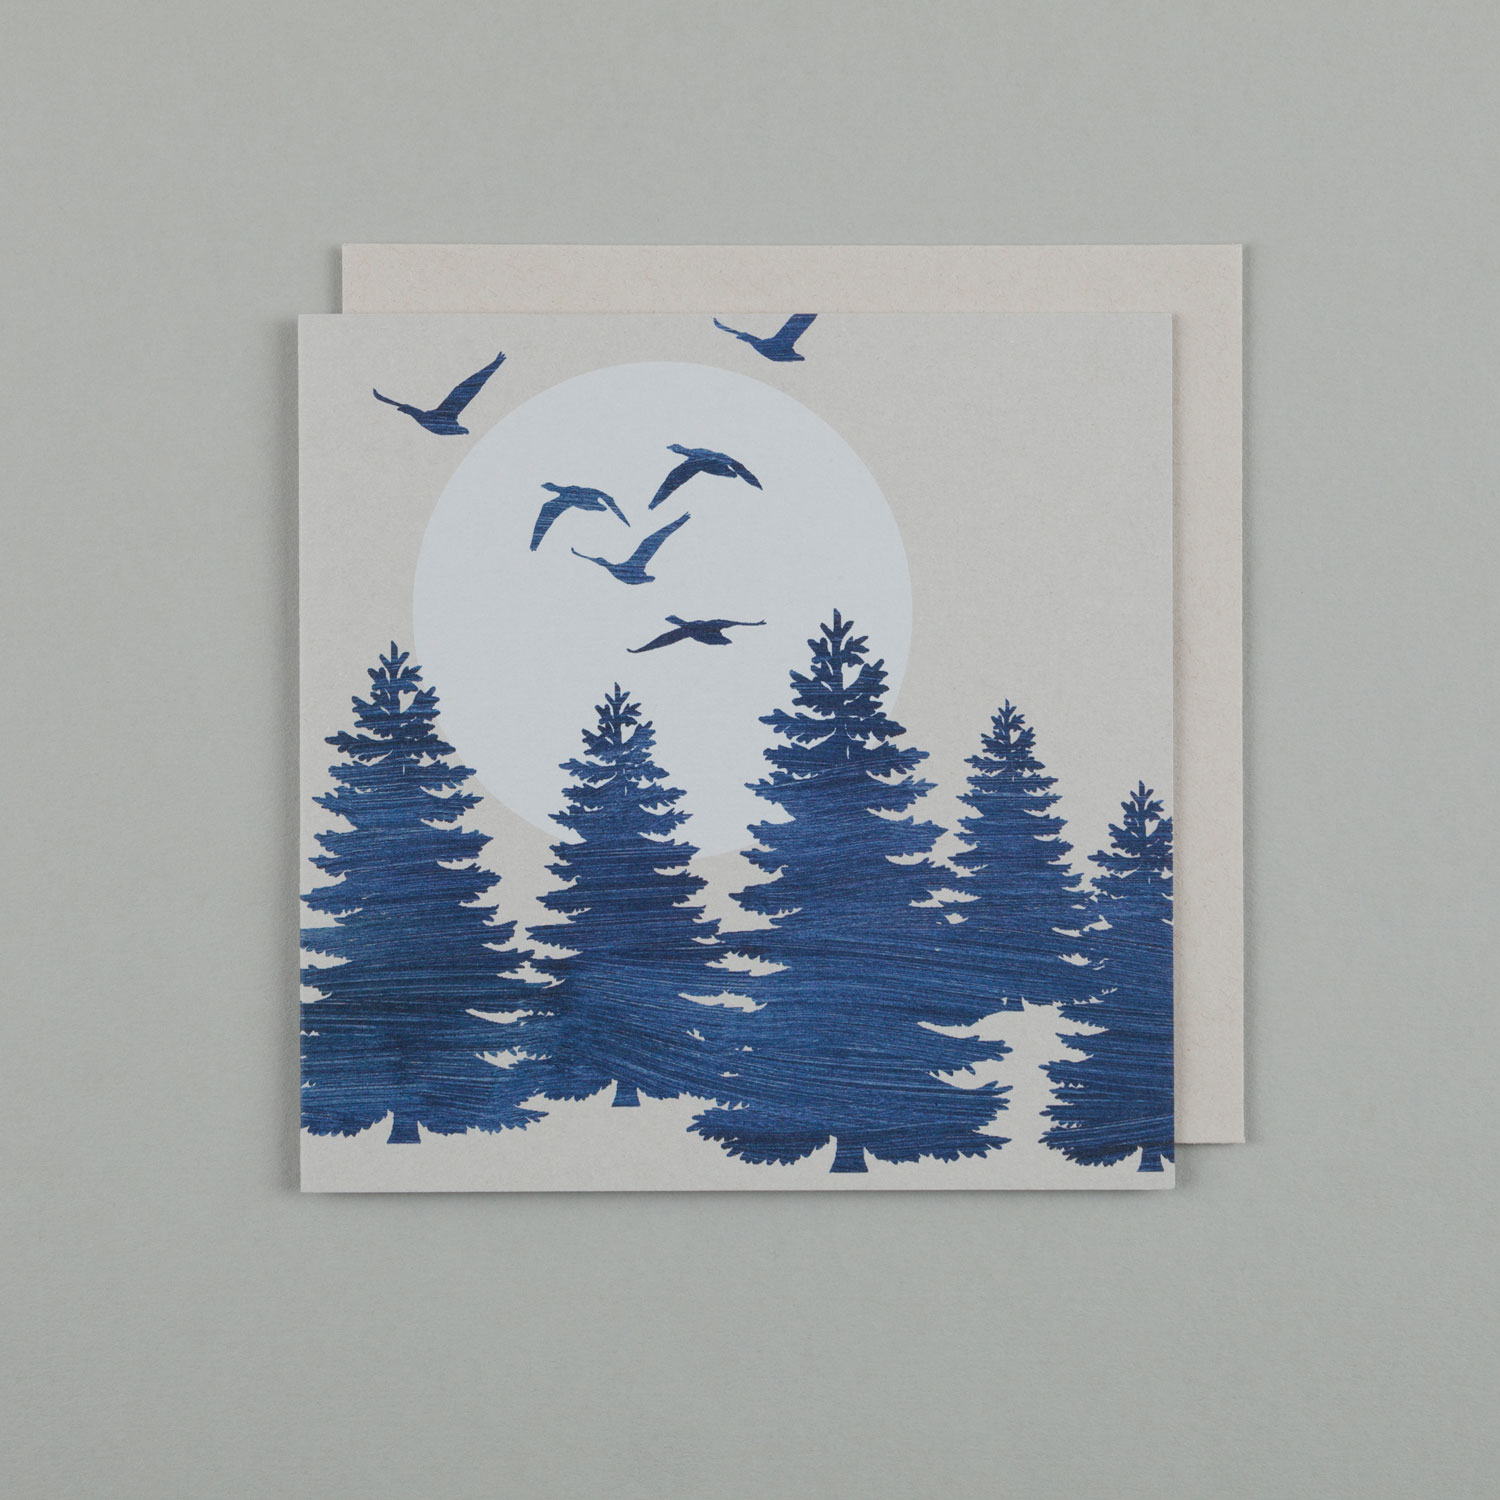 BLUE MOON TREES & GEESE